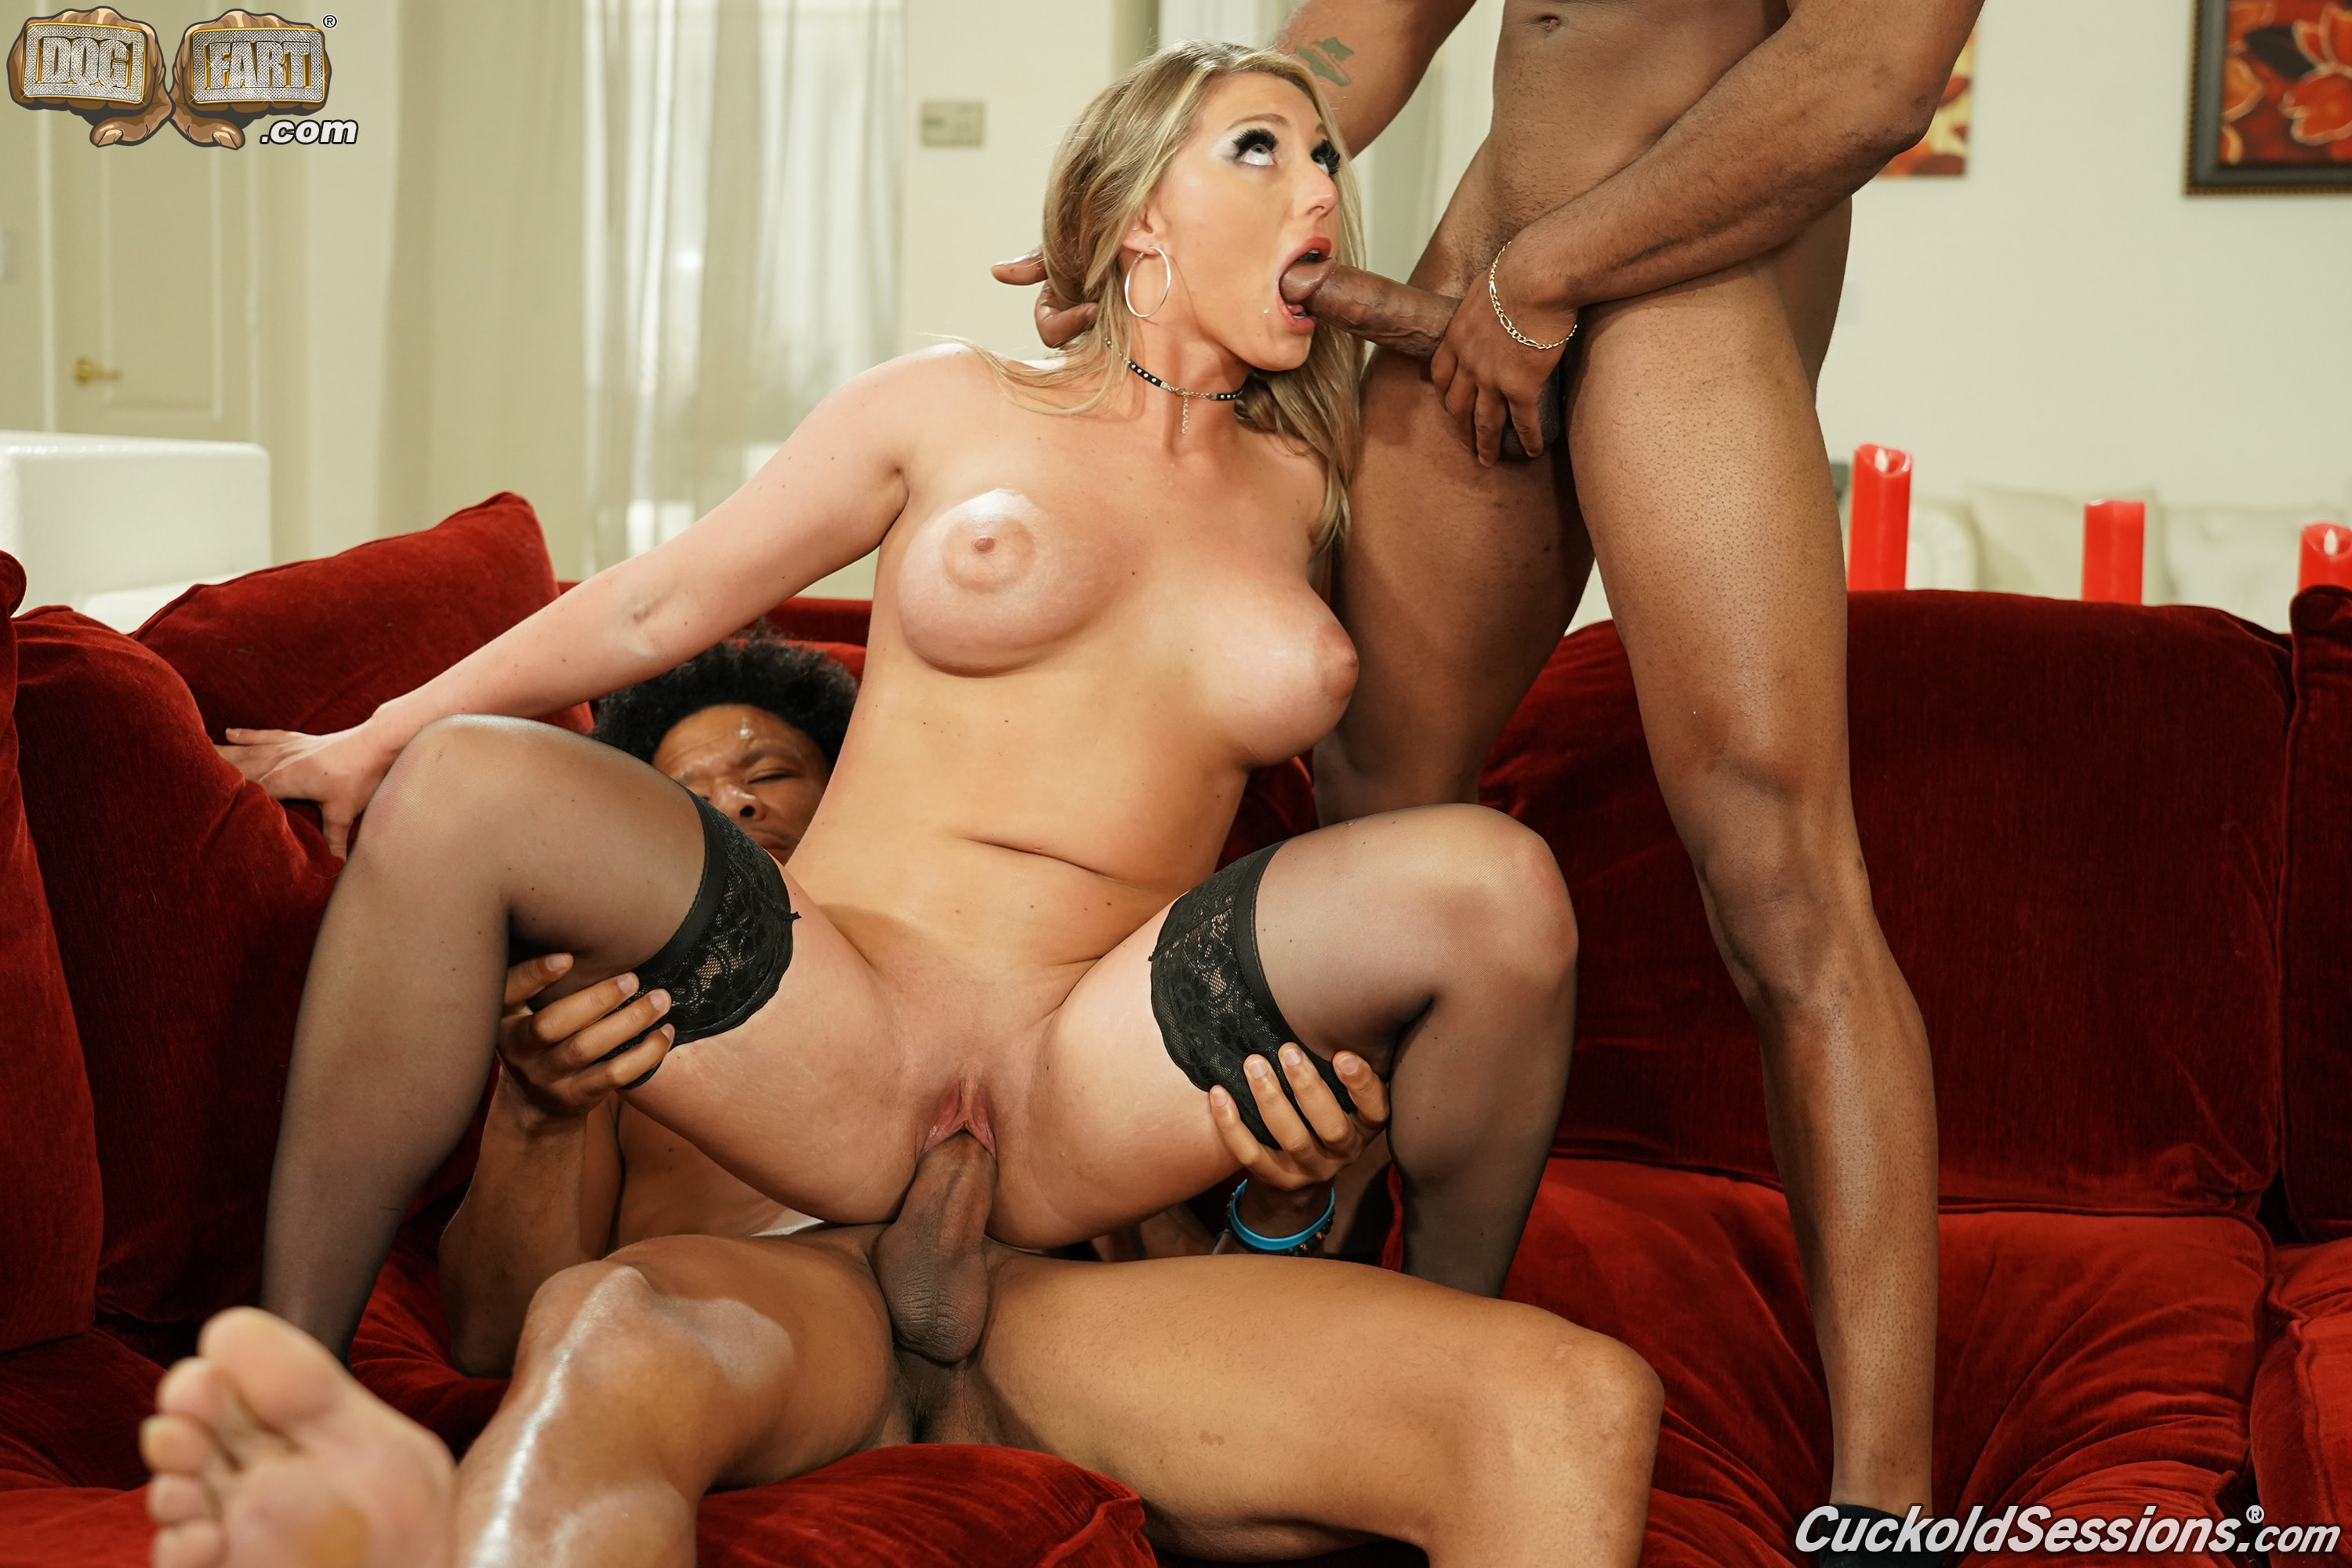 Dogfart '- Cuckold Sessions' starring Kayley Gunner (Photo 23)